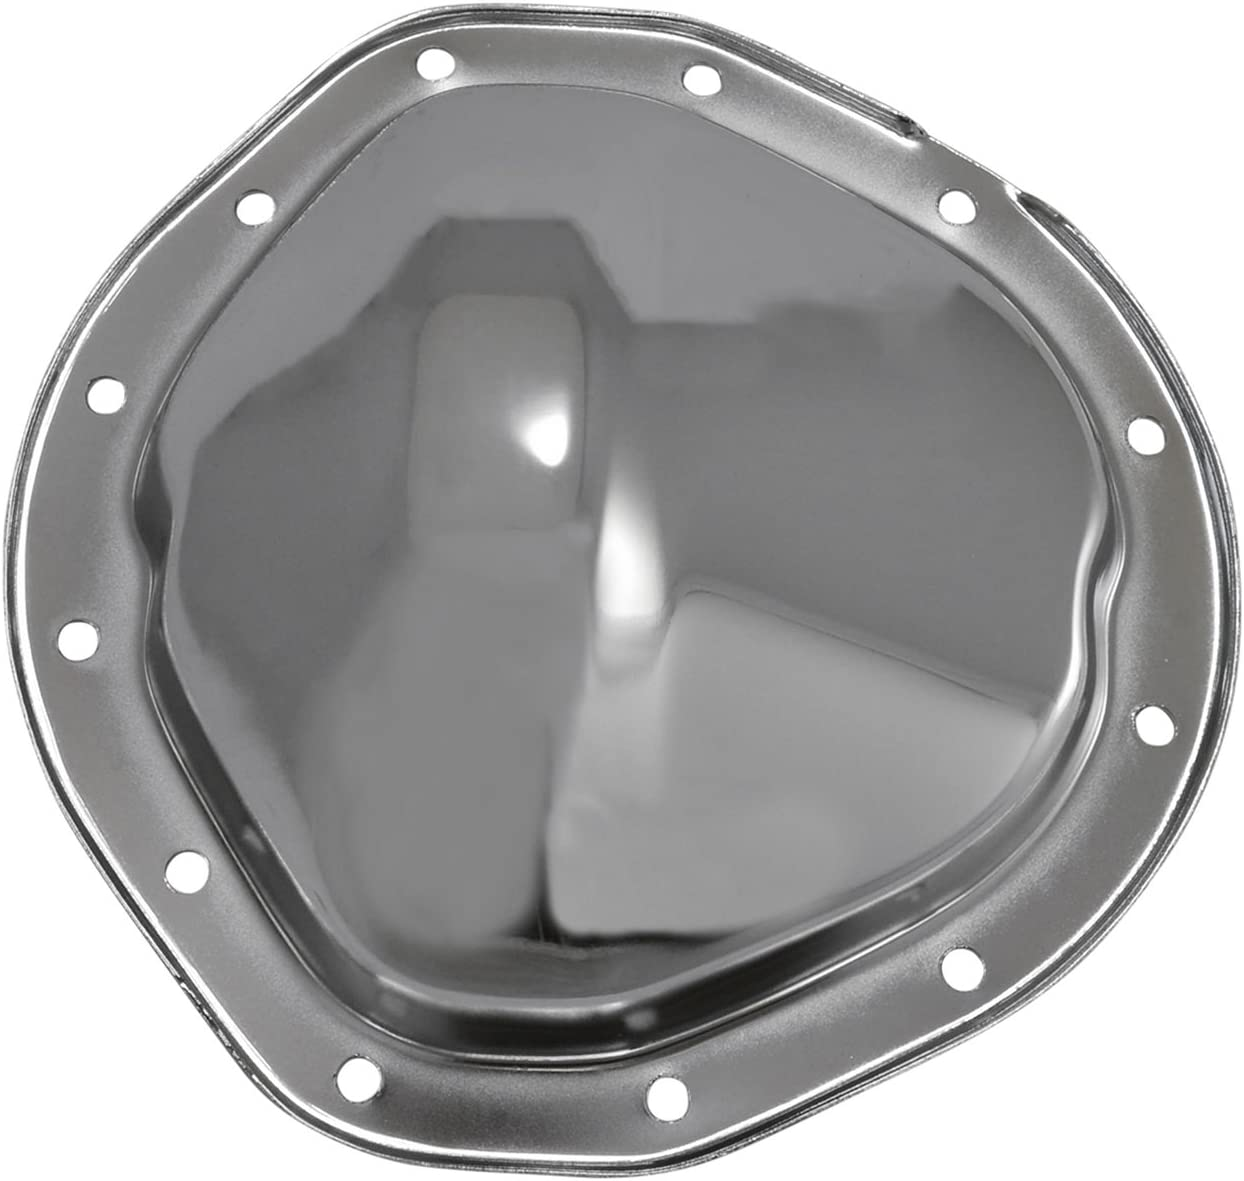 Chrome Cover for GM 12-Bolt Car Differential Yukon Gear /& Axle YP C1-GM12P